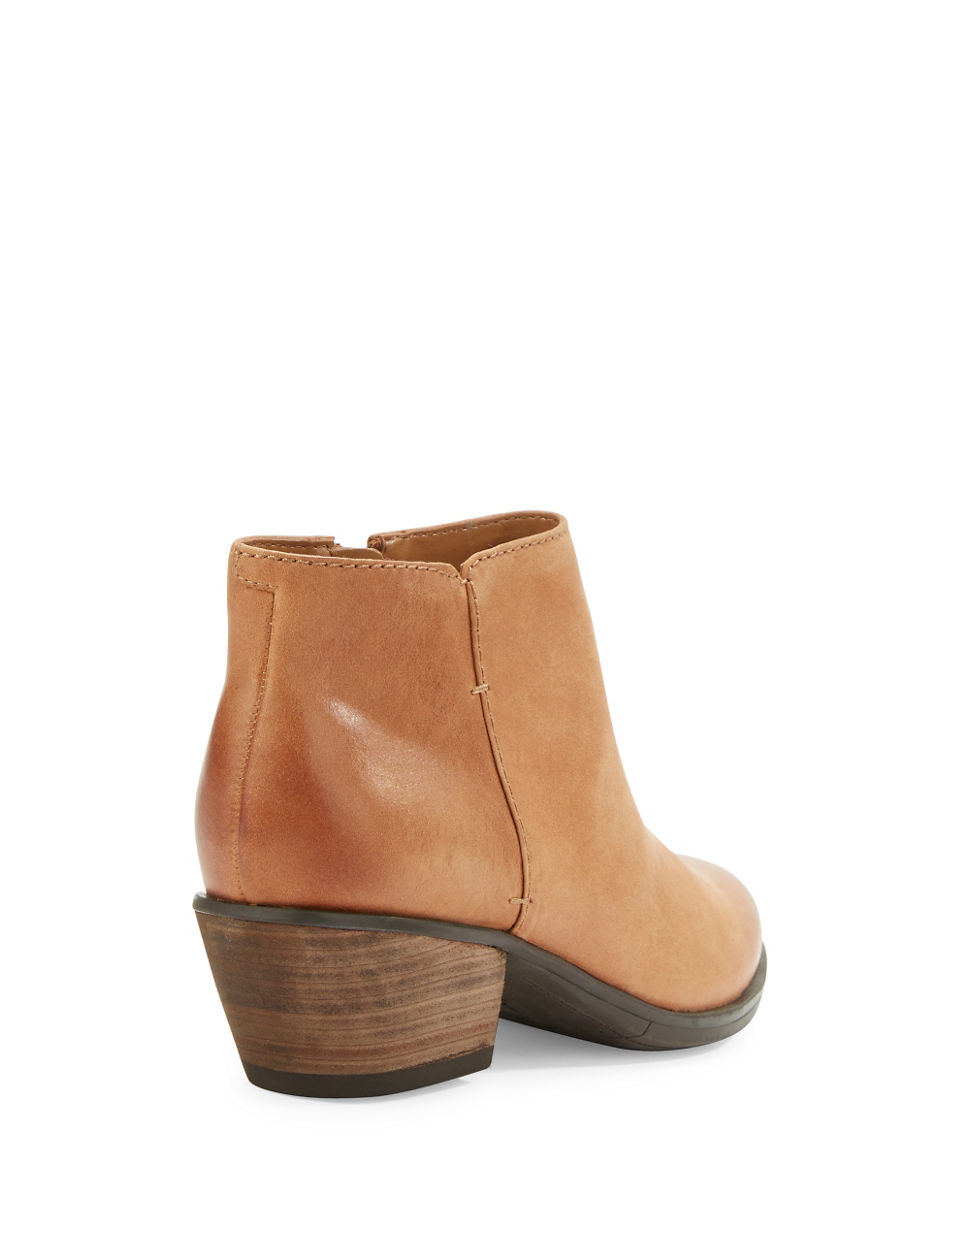 Clarks Gelata Italia Leather Ankle Boots in Brown | Lyst